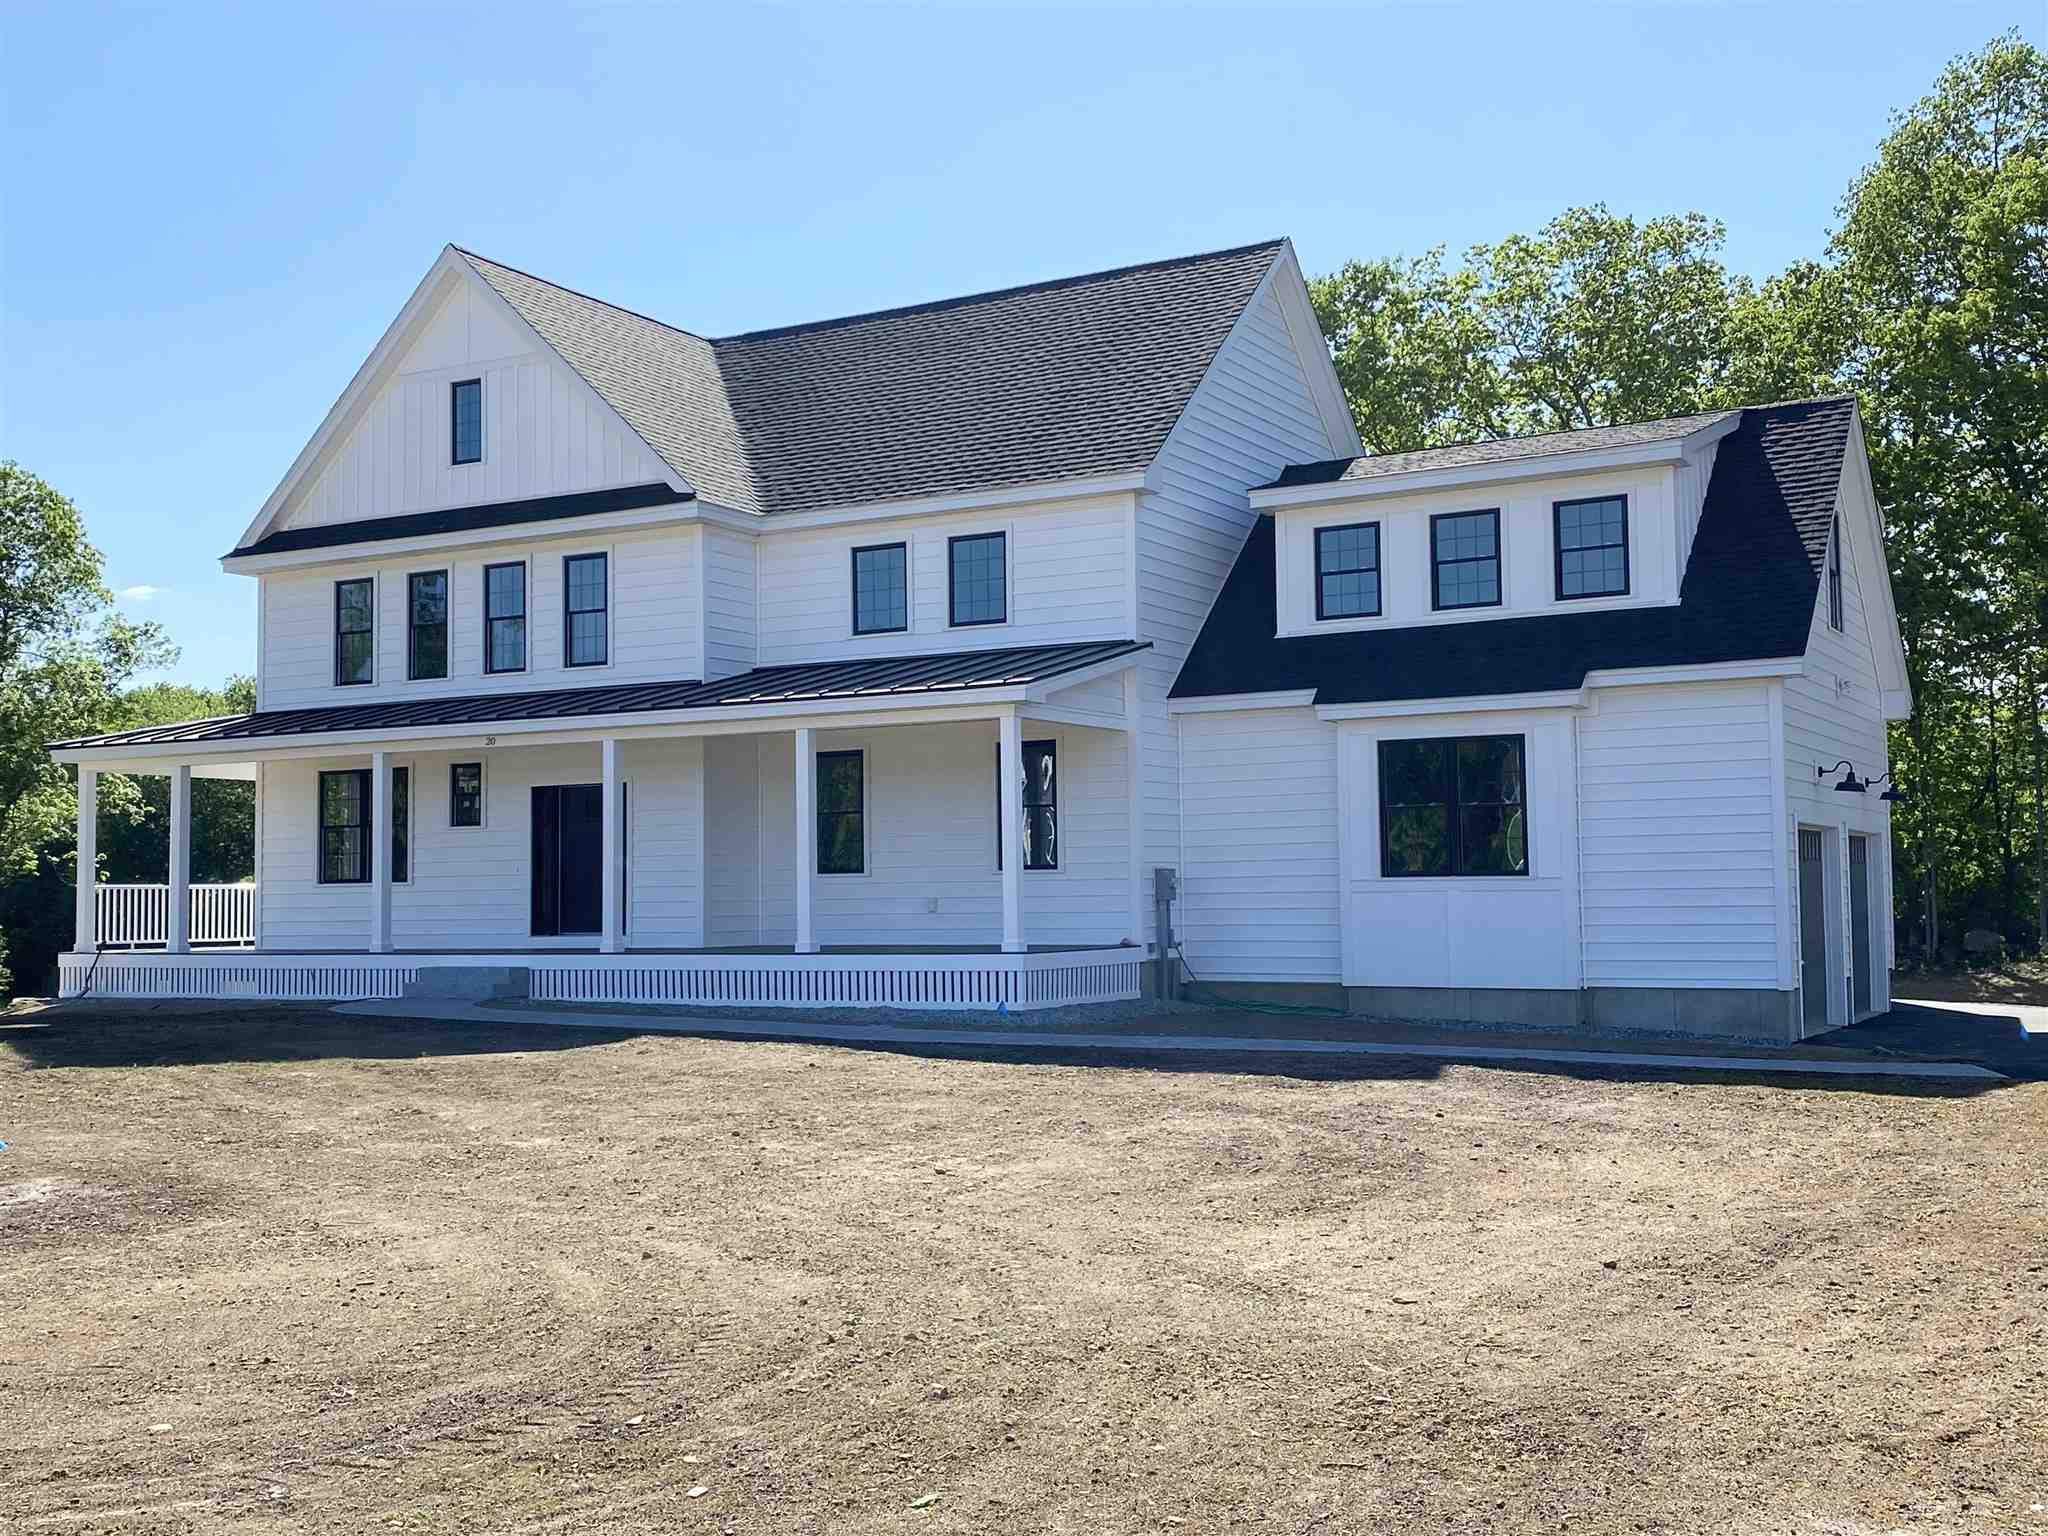 MLS 4798691: Lot 20 Treat Farm Road, Stratham NH